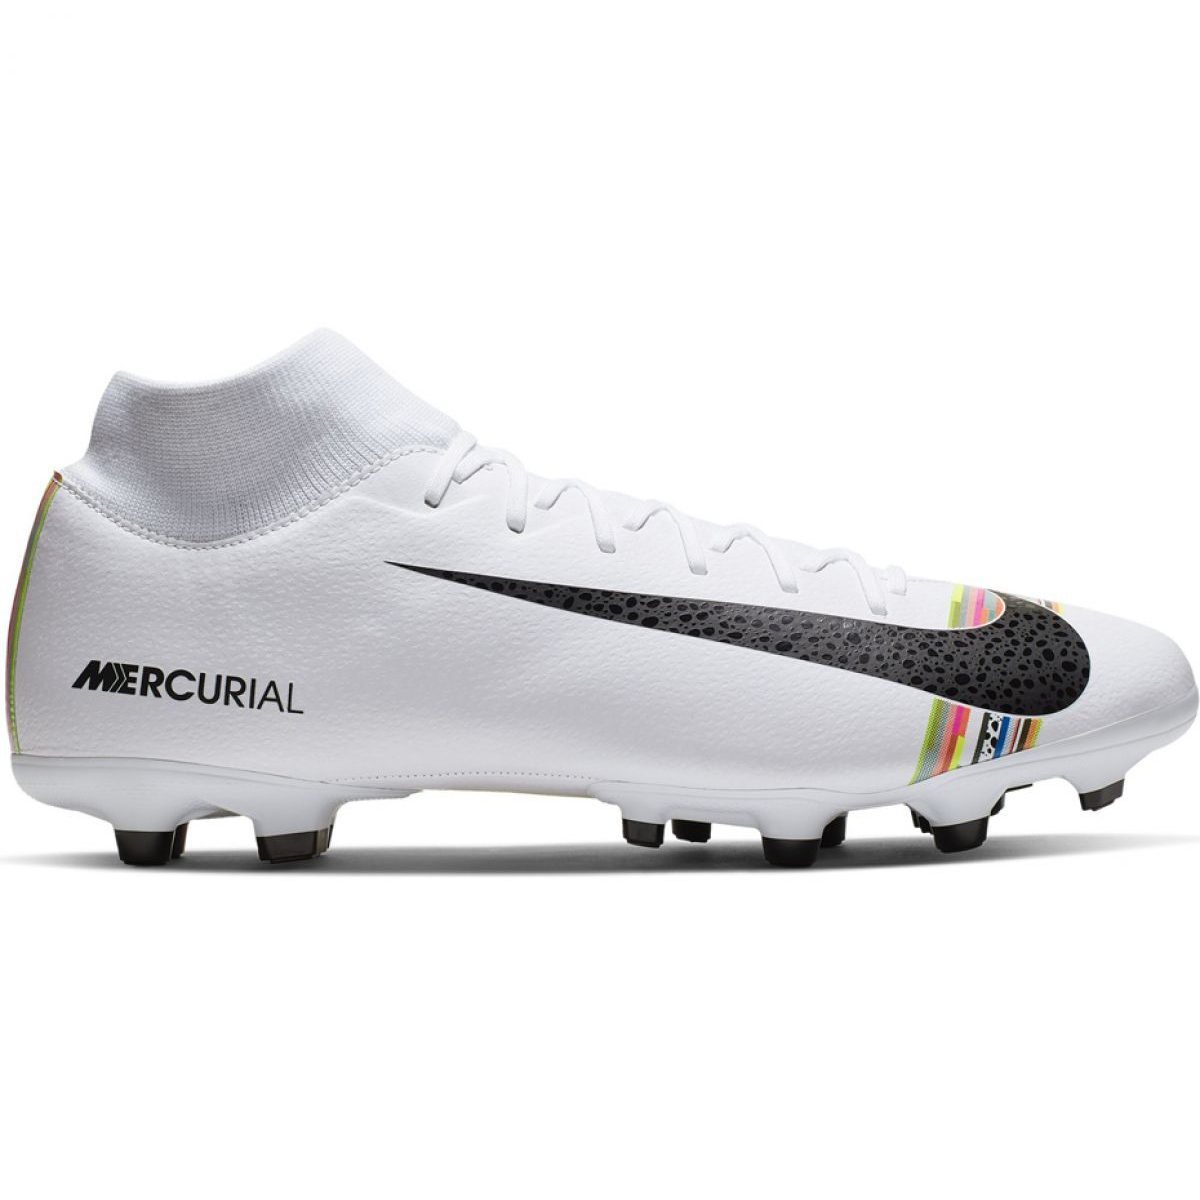 best loved 0ff9e 54549 Nike Mercurial Superfly 6 Academy Mg M AJ3541-109 Football Boots